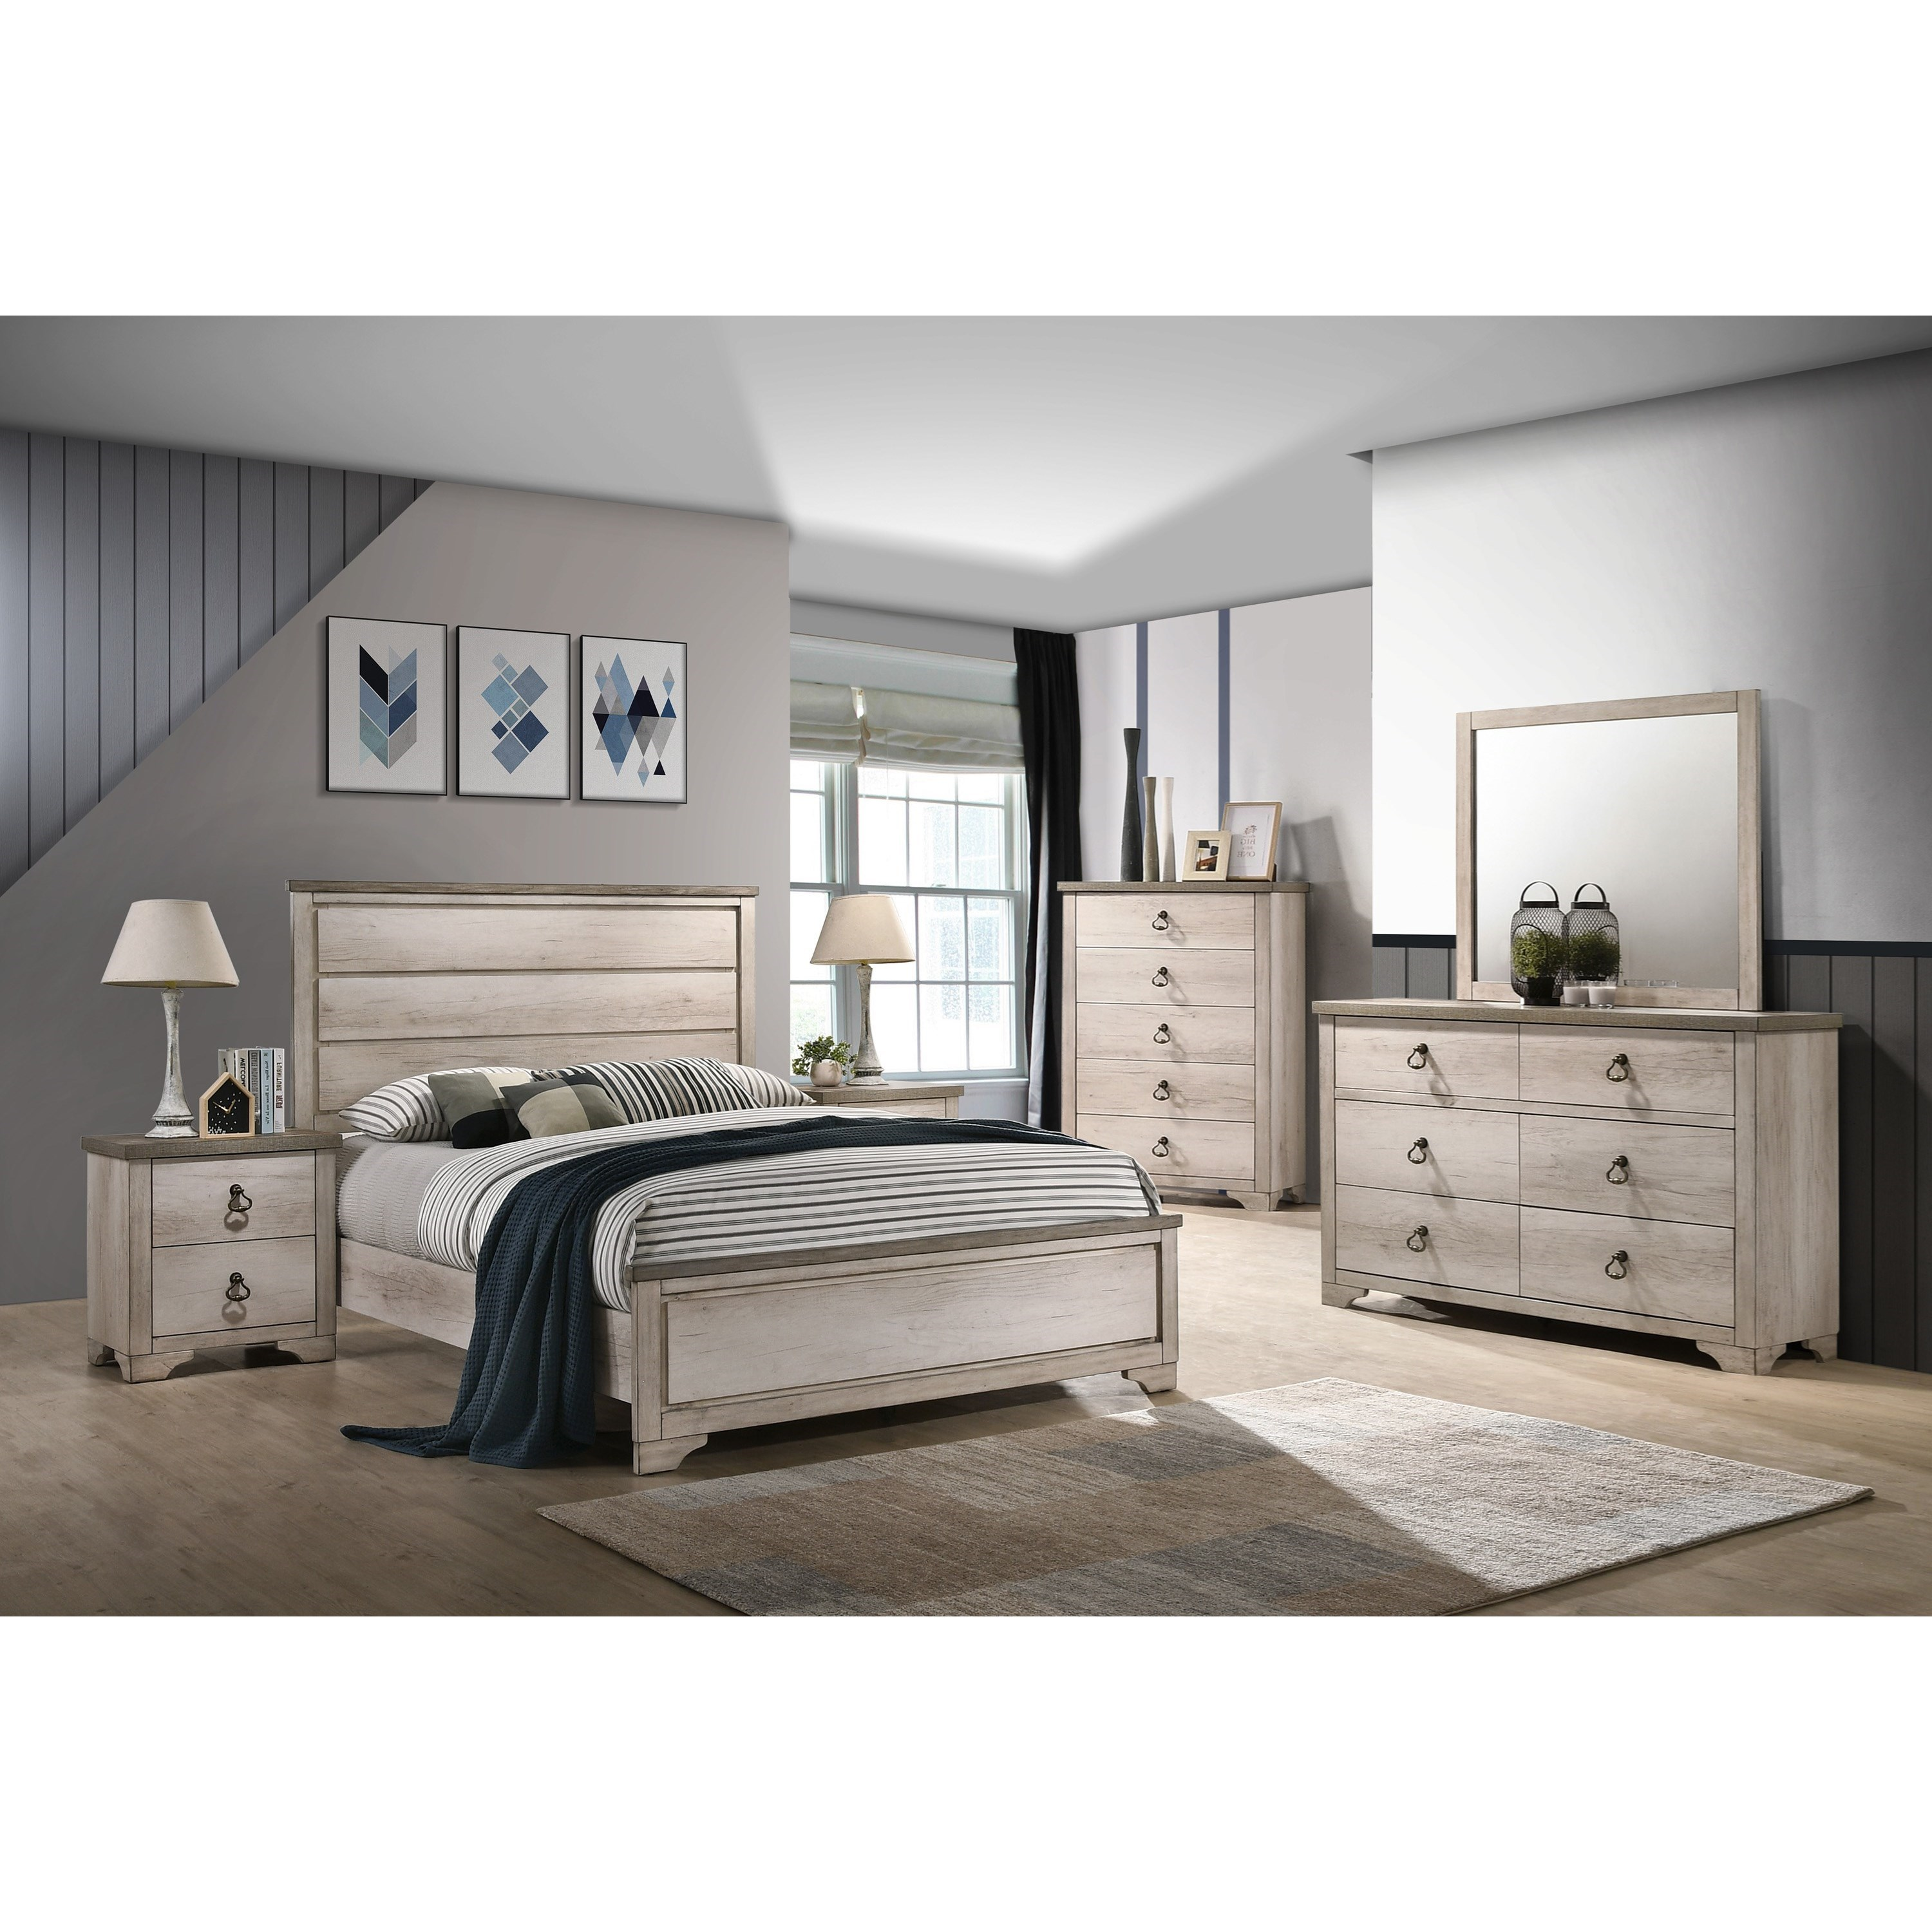 Patterson King Bedroom Group by CM at Del Sol Furniture